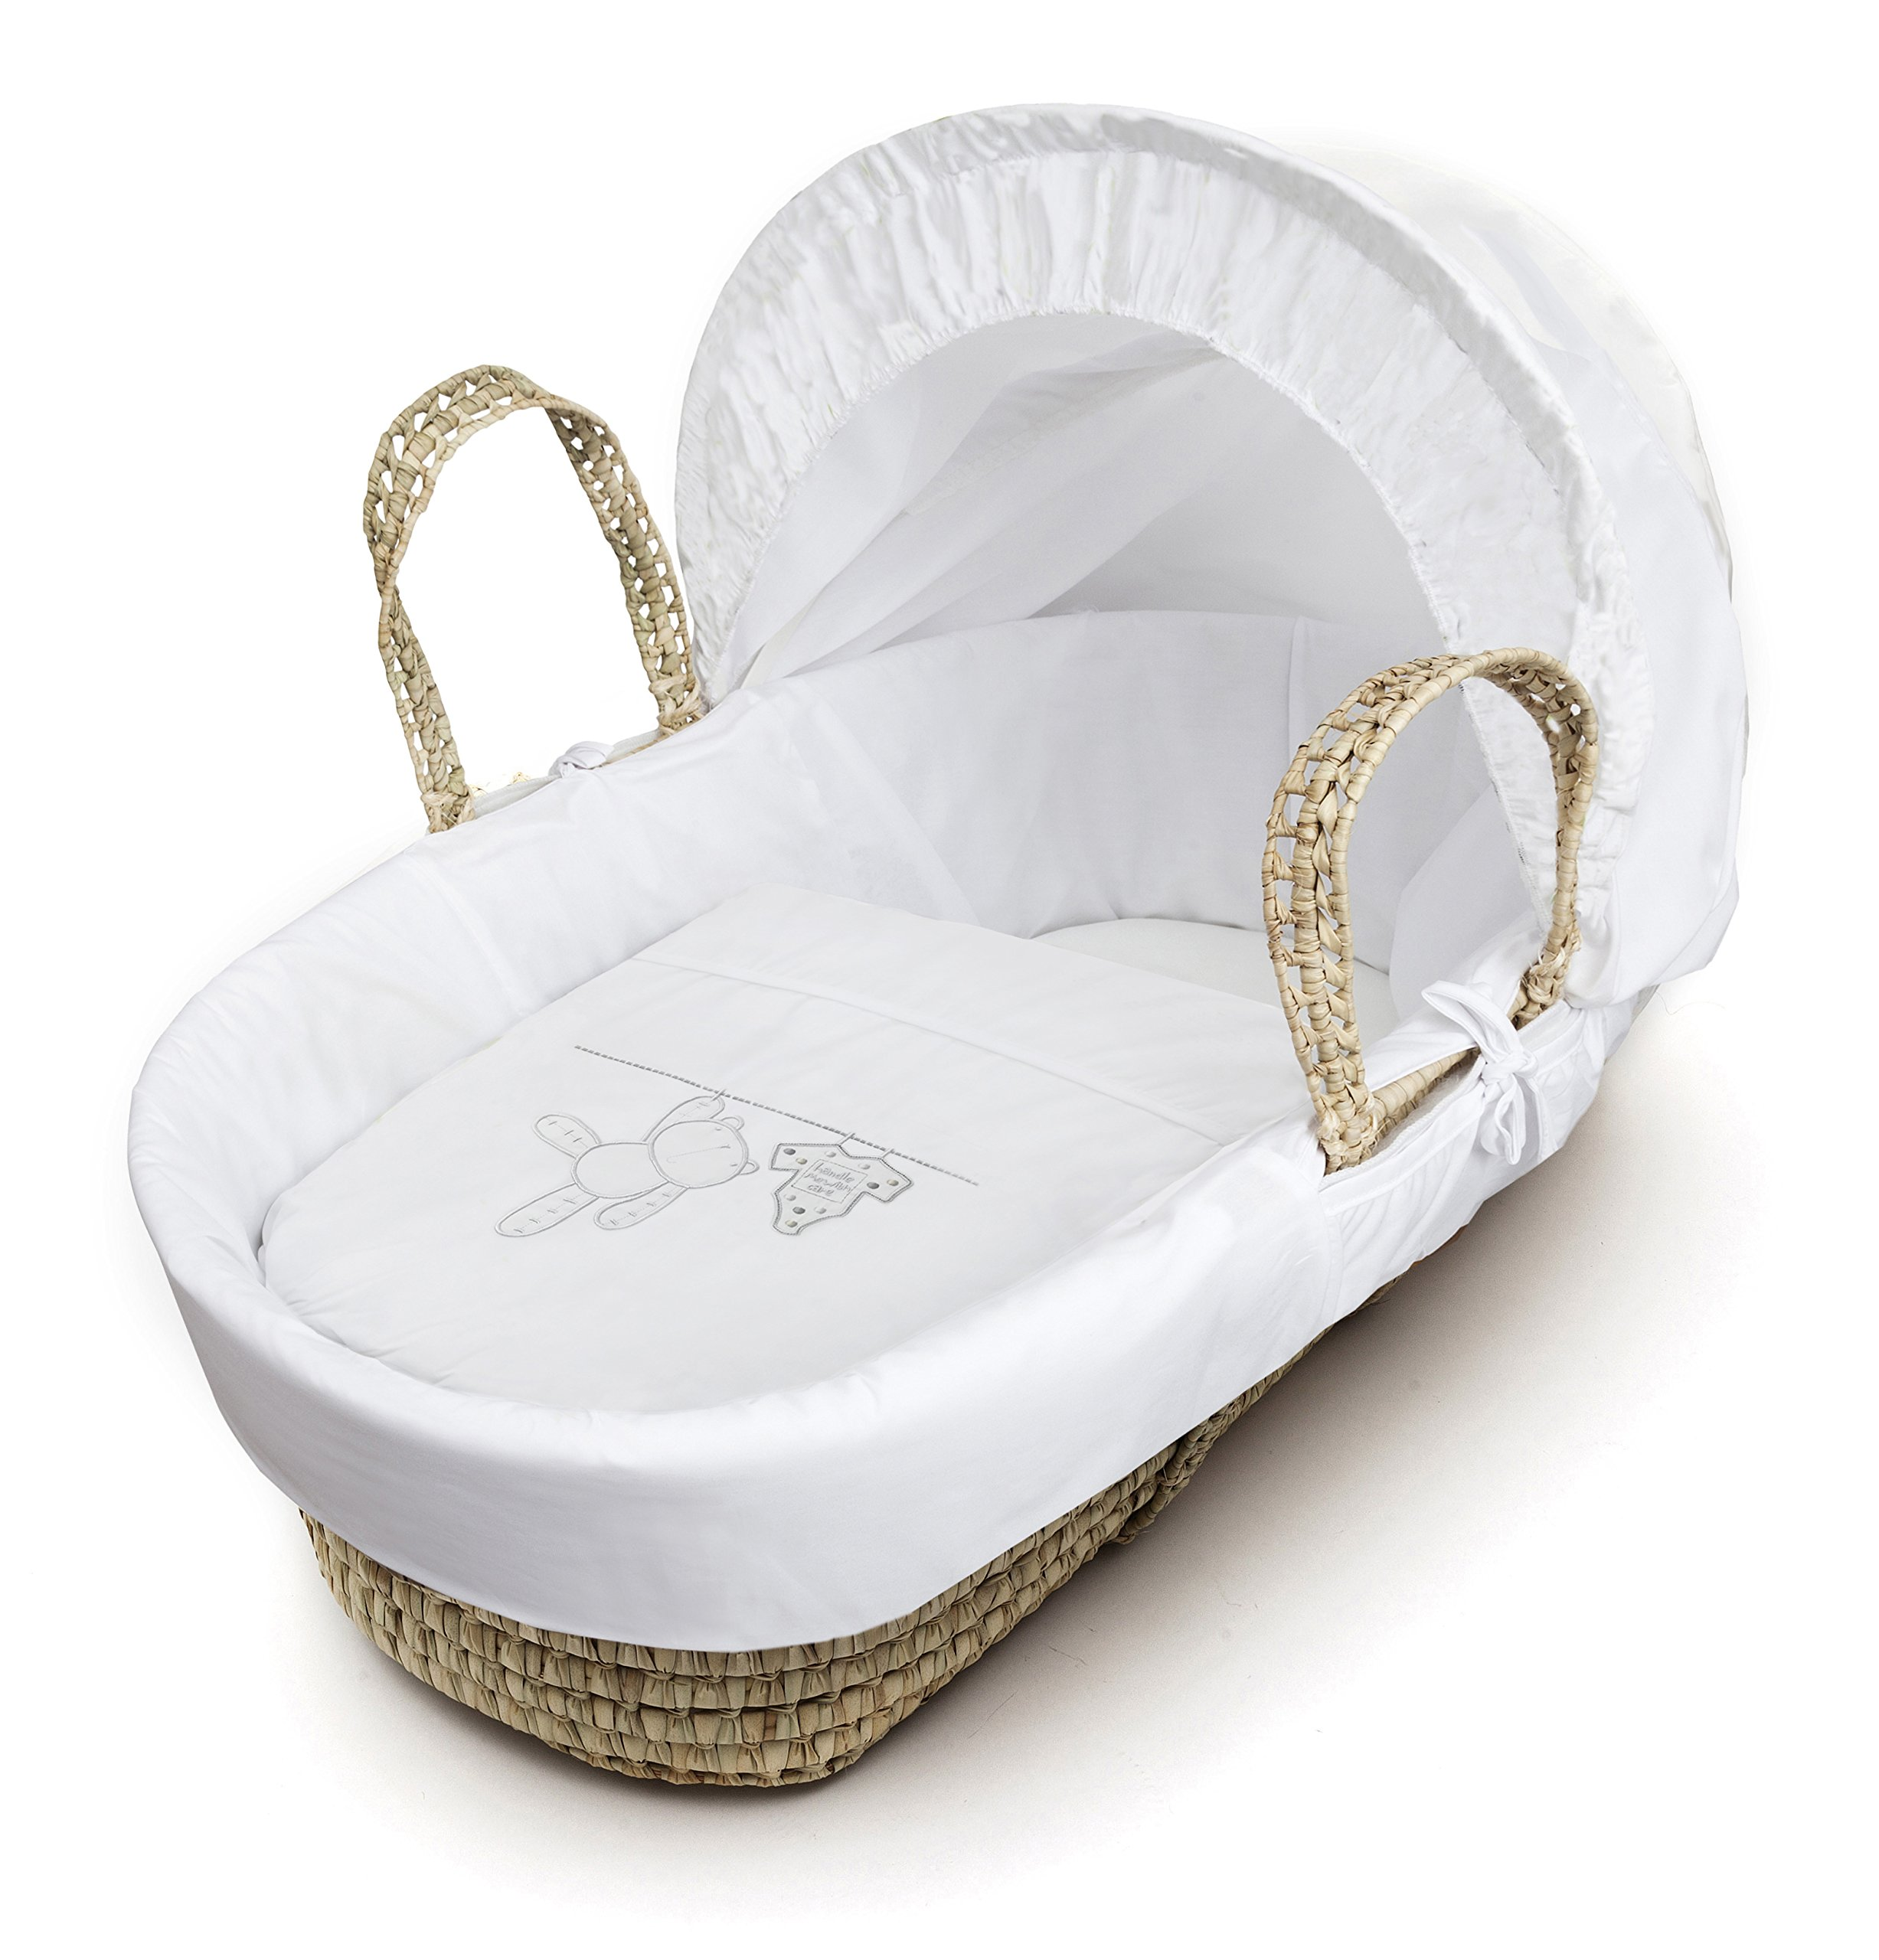 White Teddy Wash Day Moses Basket Dressings only(Basket not included) Elegant Baby Dressings For Moses Baskets Includes Padding,Quilt, Liner,Fabric Hood Basket and Mattress and Hood bars are NOT included 1